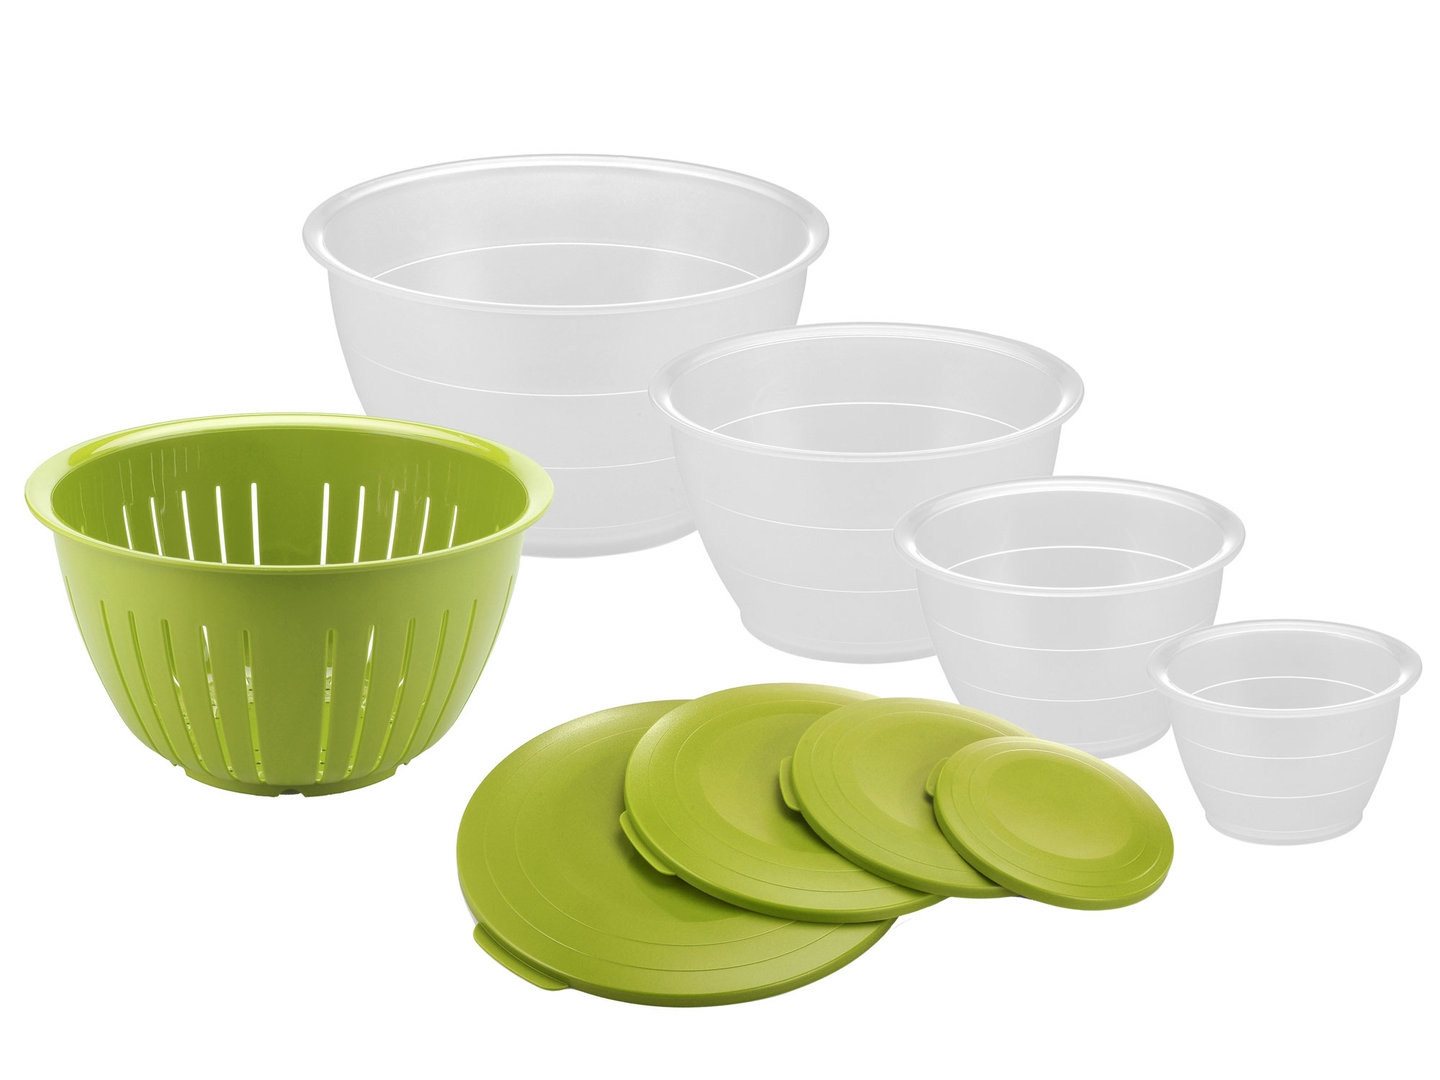 WESTMARK 9 pcs bowl set with colander OLYMPIA apple green